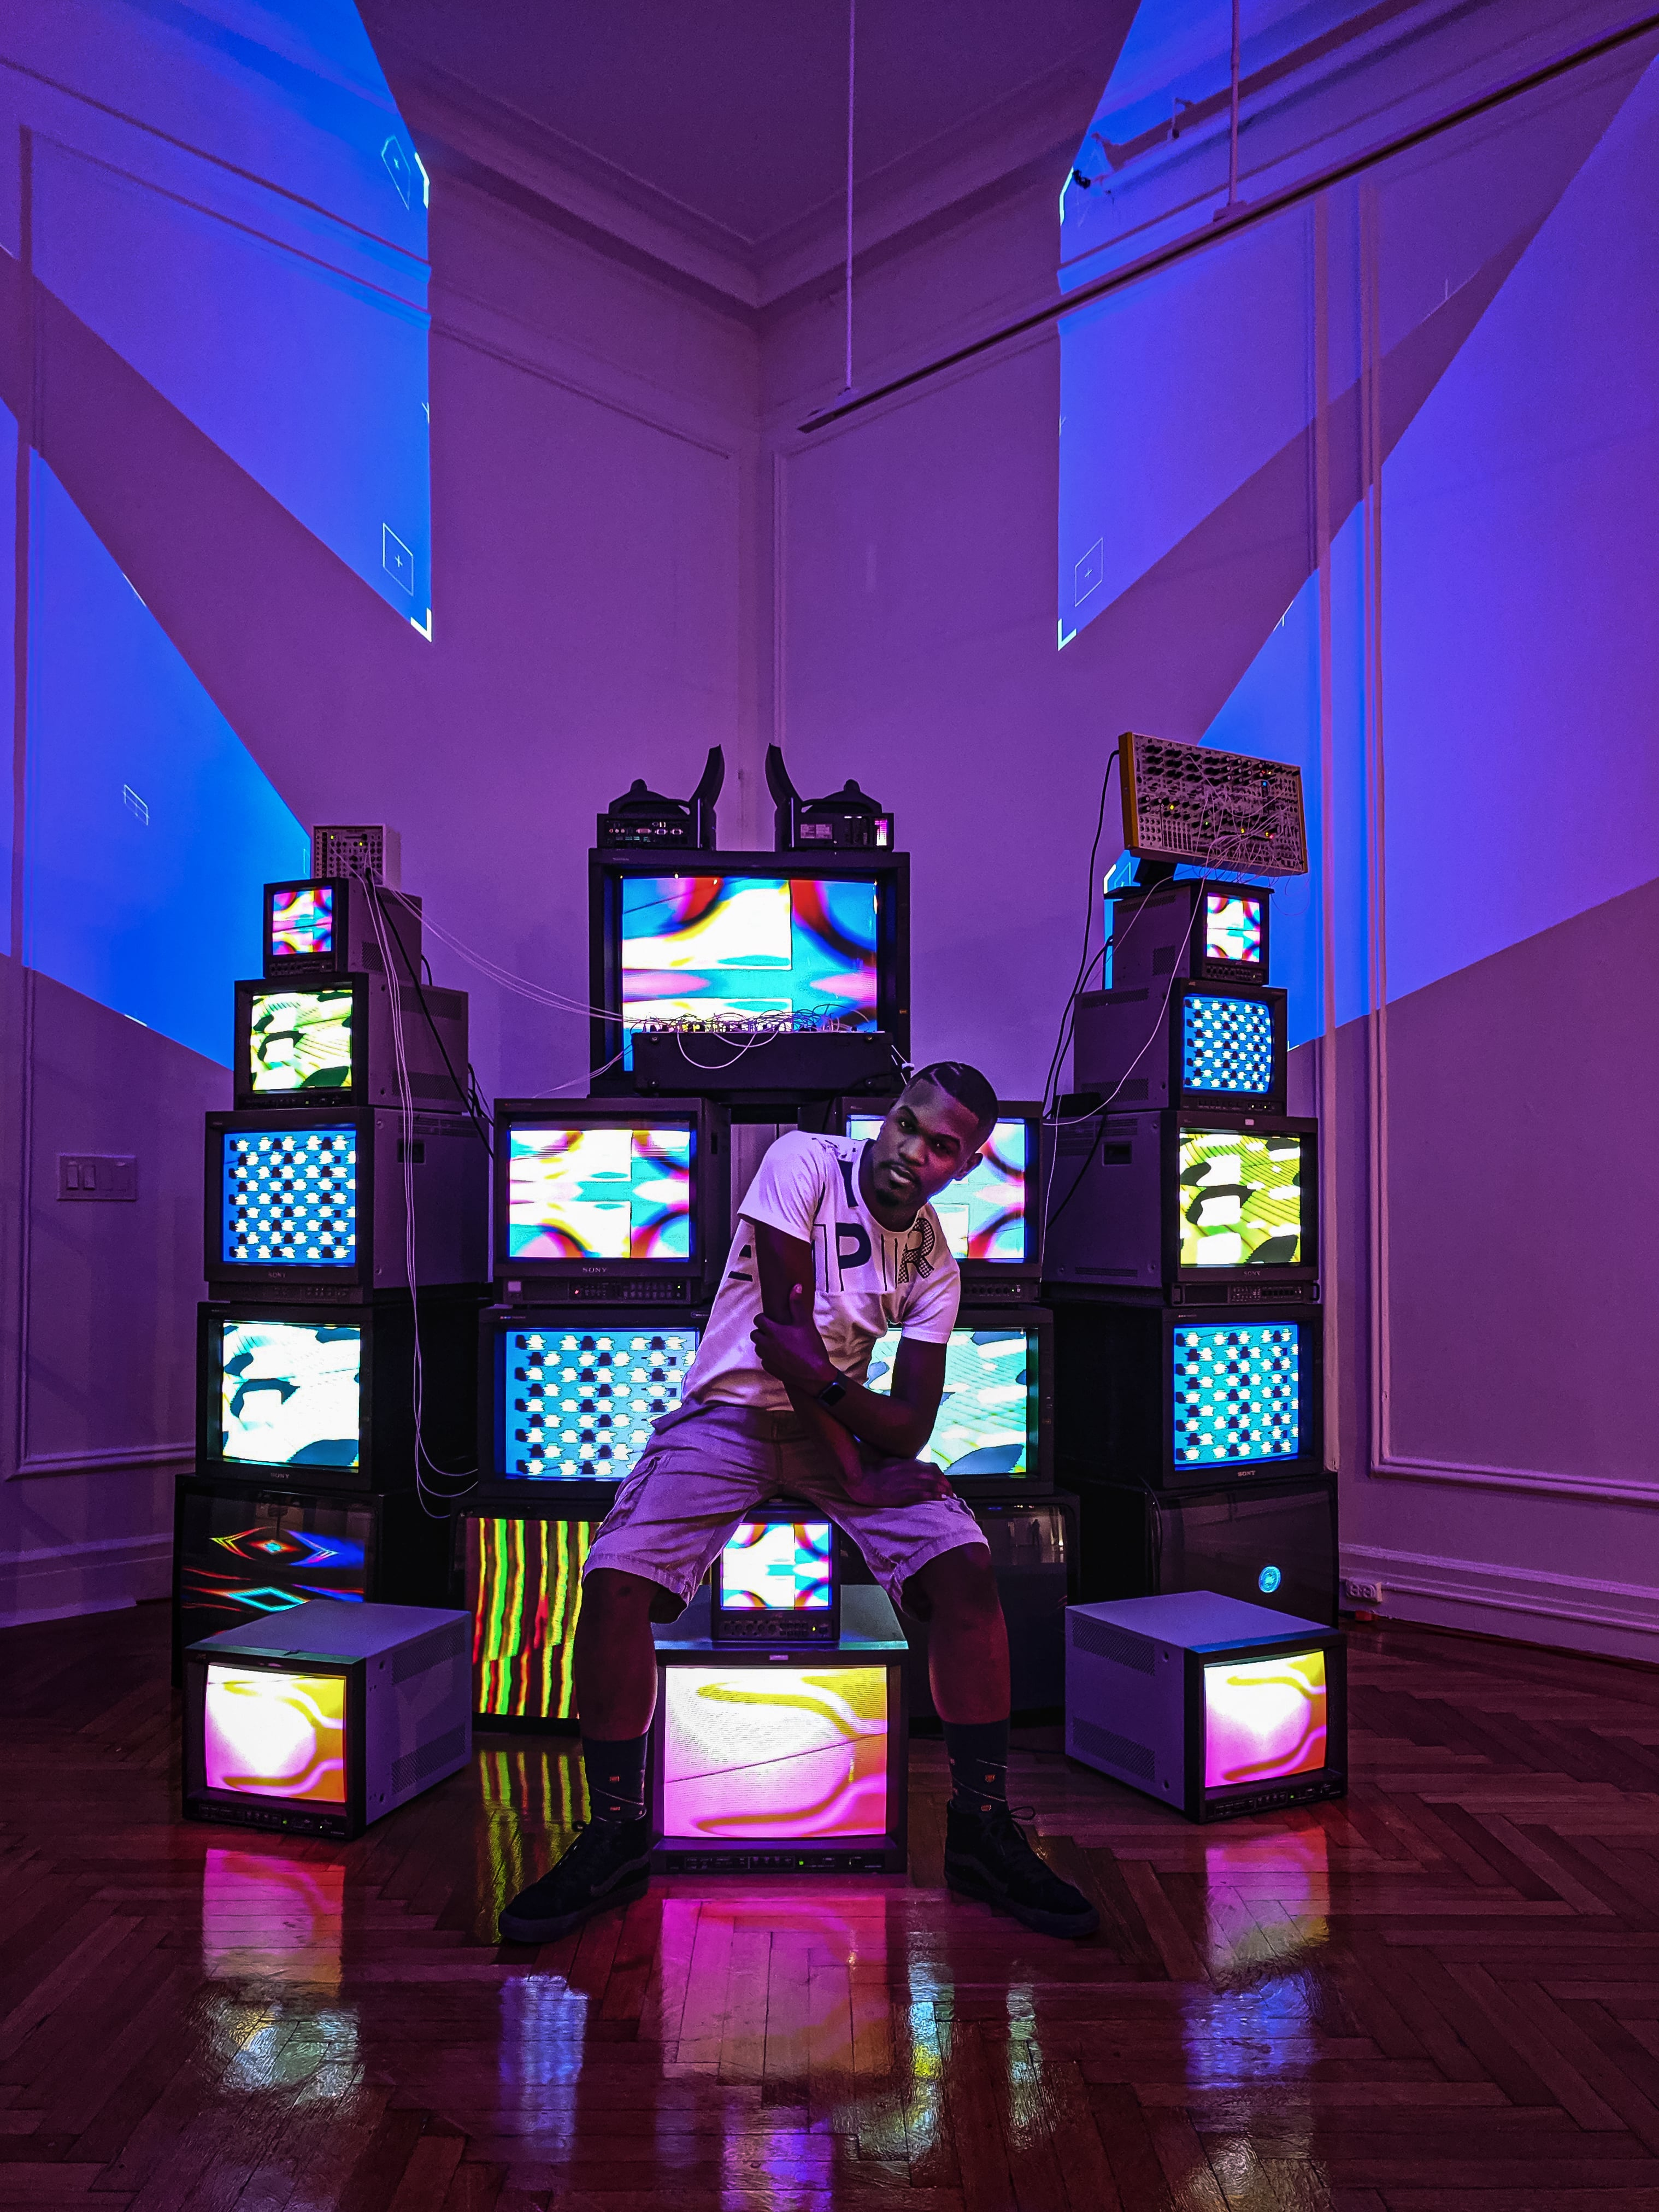 Beauteous—a video sculpture with two dozen screens showing colorful abstract patterns—is seen with a young performer sitting atop the CRTs.